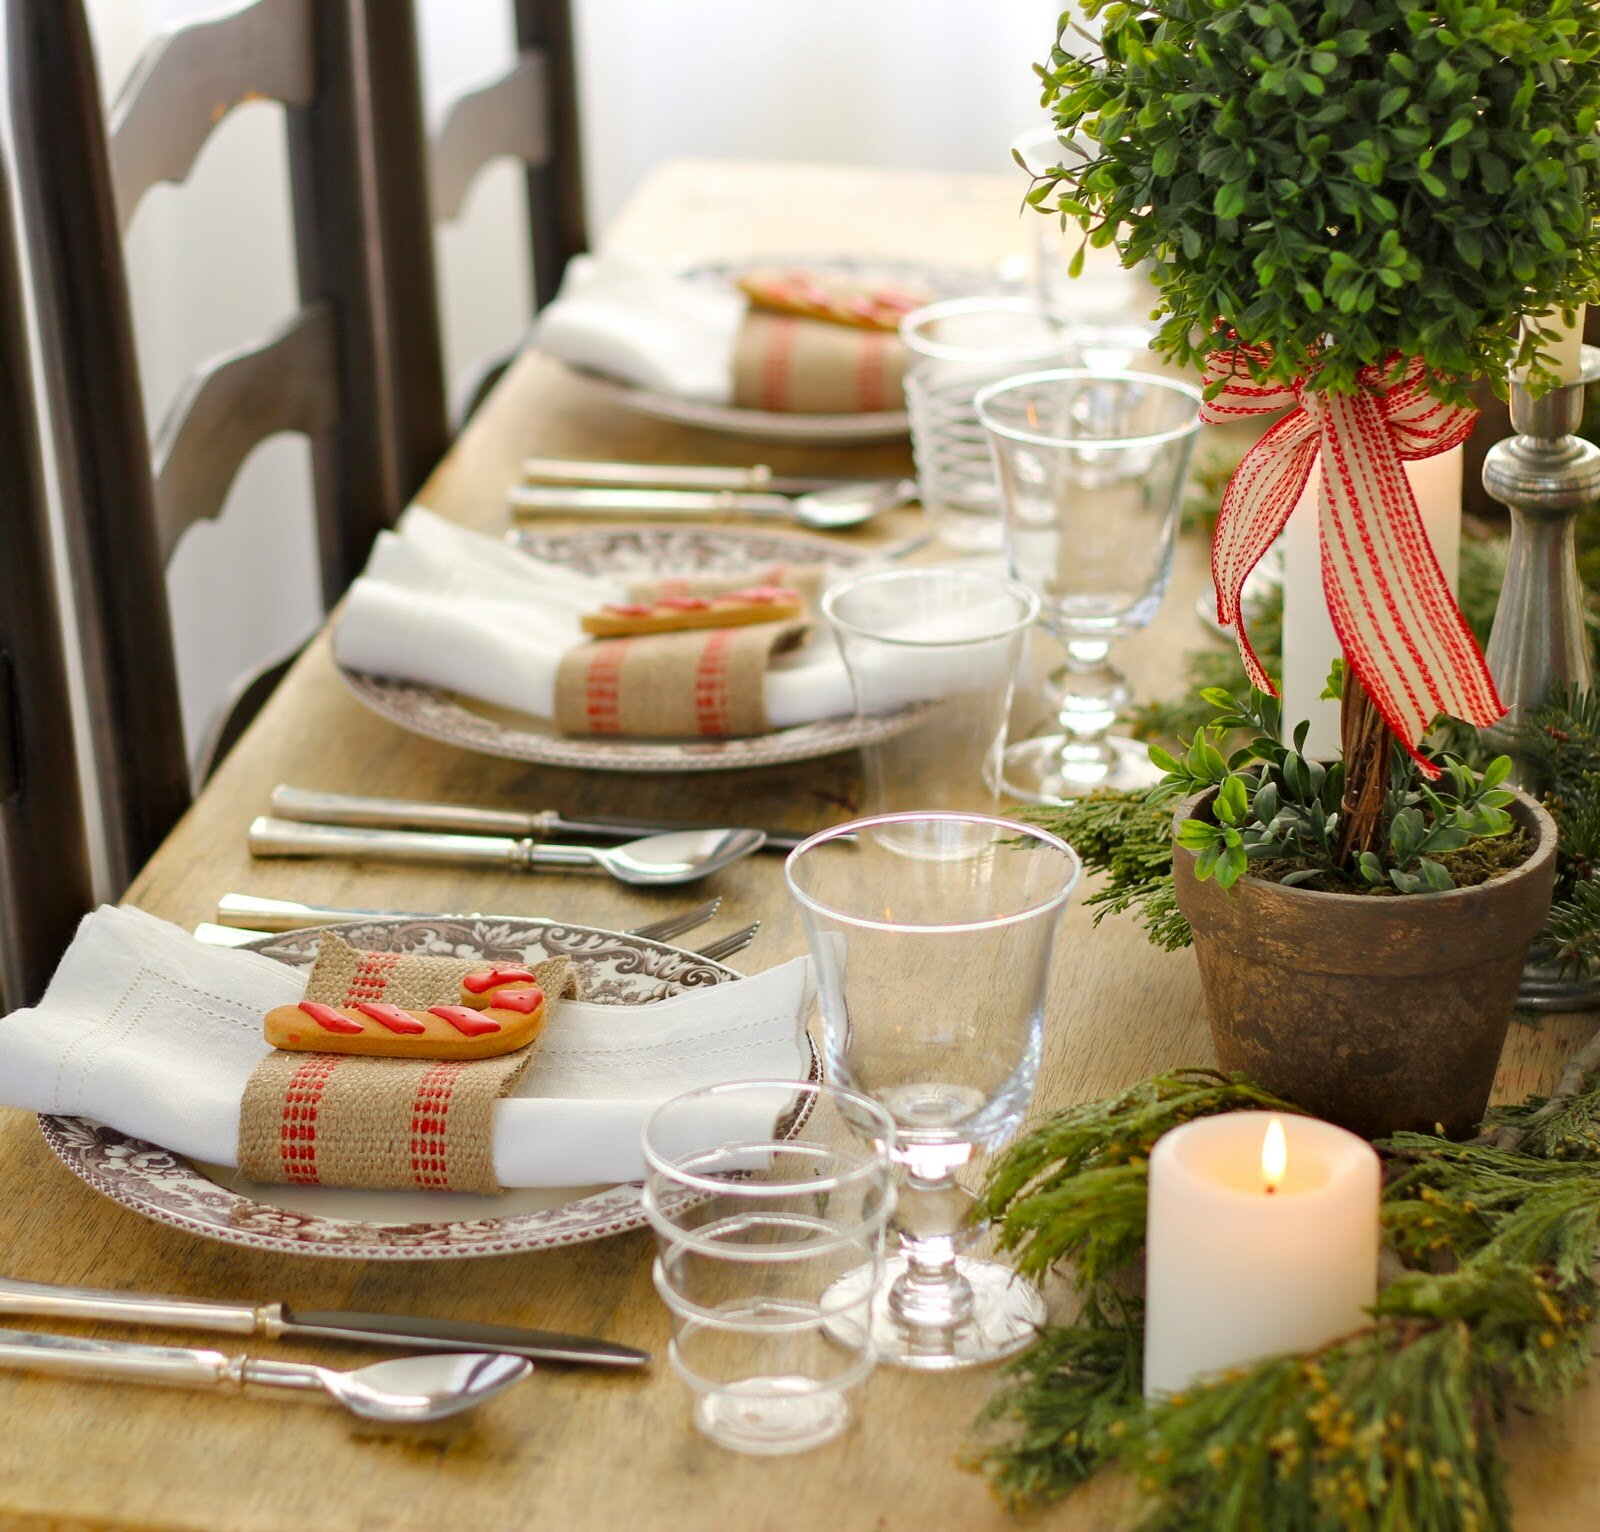 15 dining table decoration samples mostbeautifulthings for Small table setting ideas